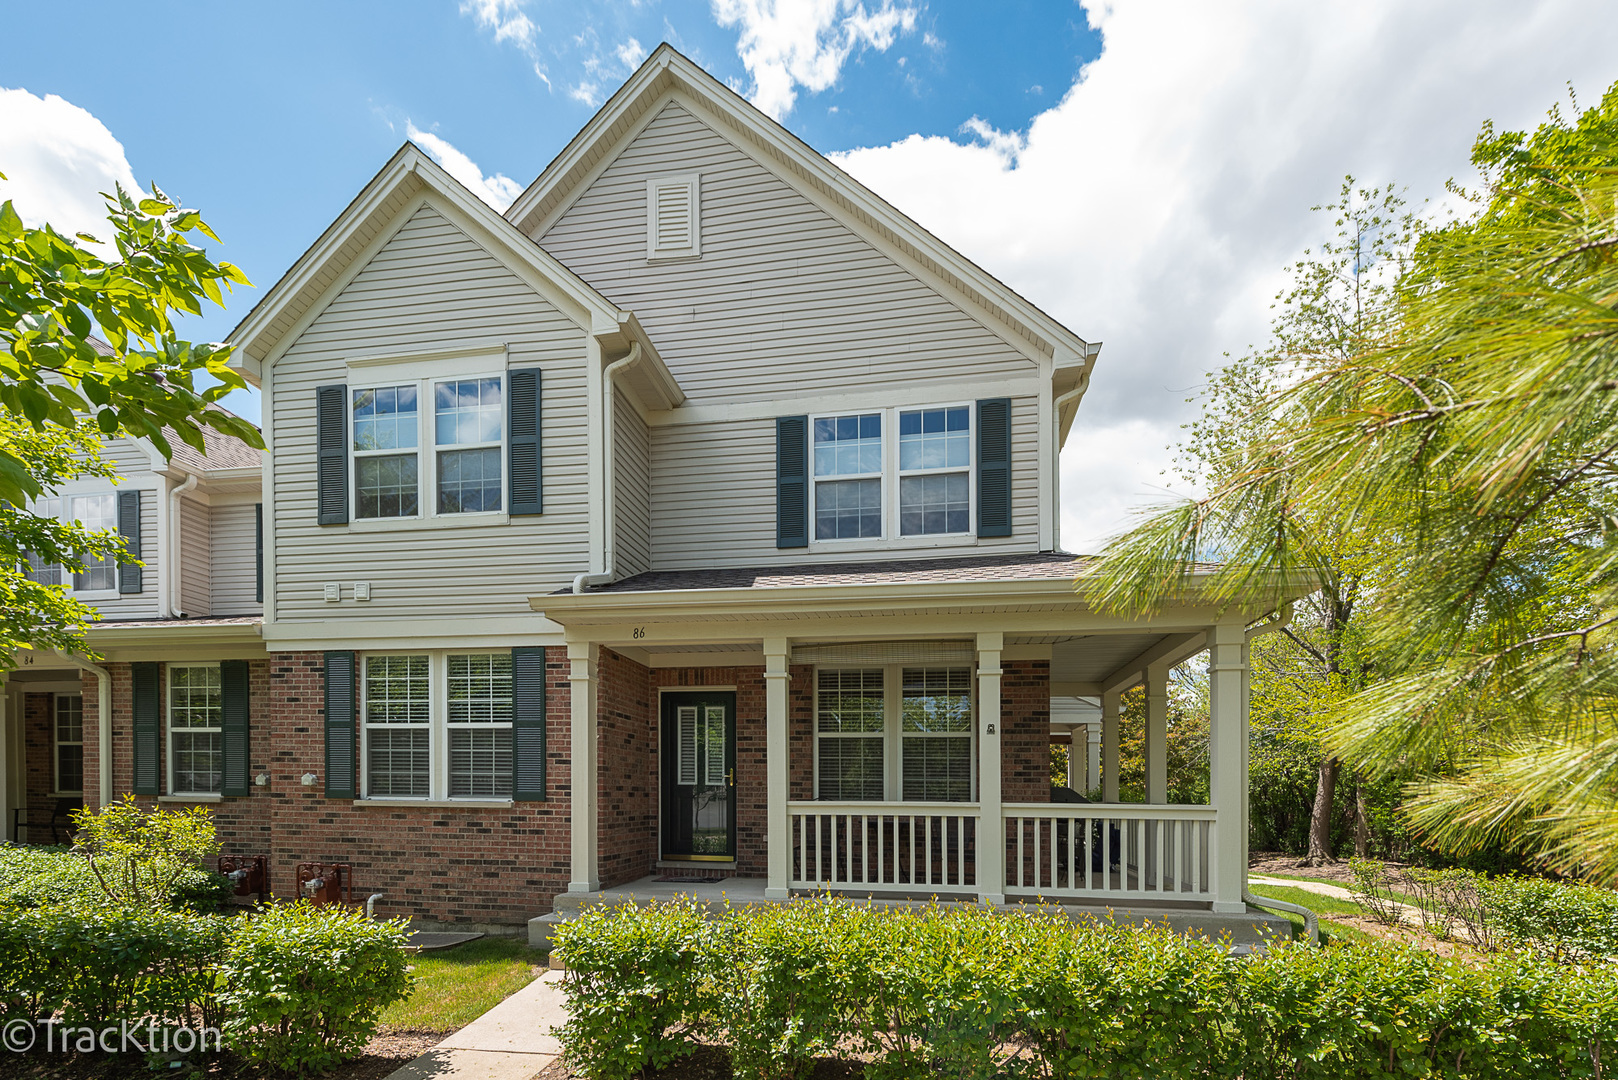 Photo of 86 N Mill Road #86, Addison, IL 60101